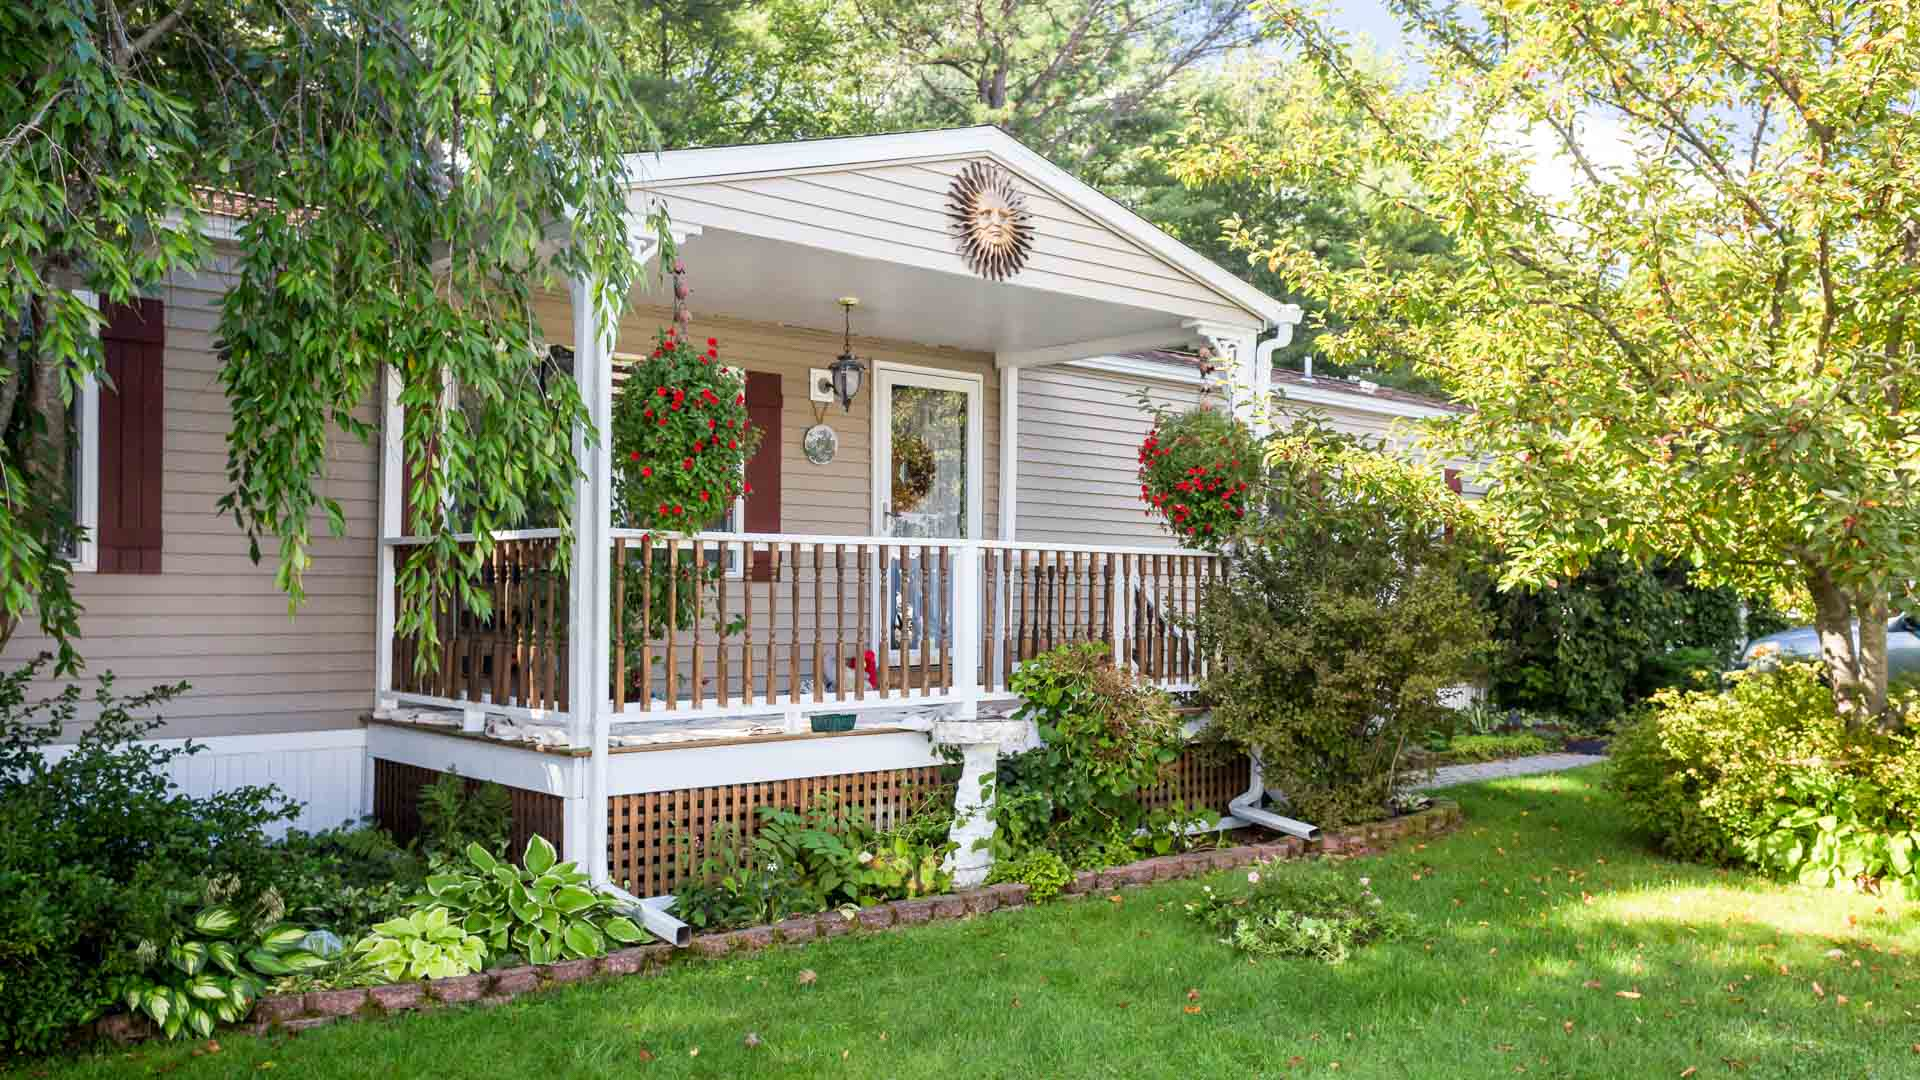 Town and Country Village Manufactured Homes in Lisbon ME